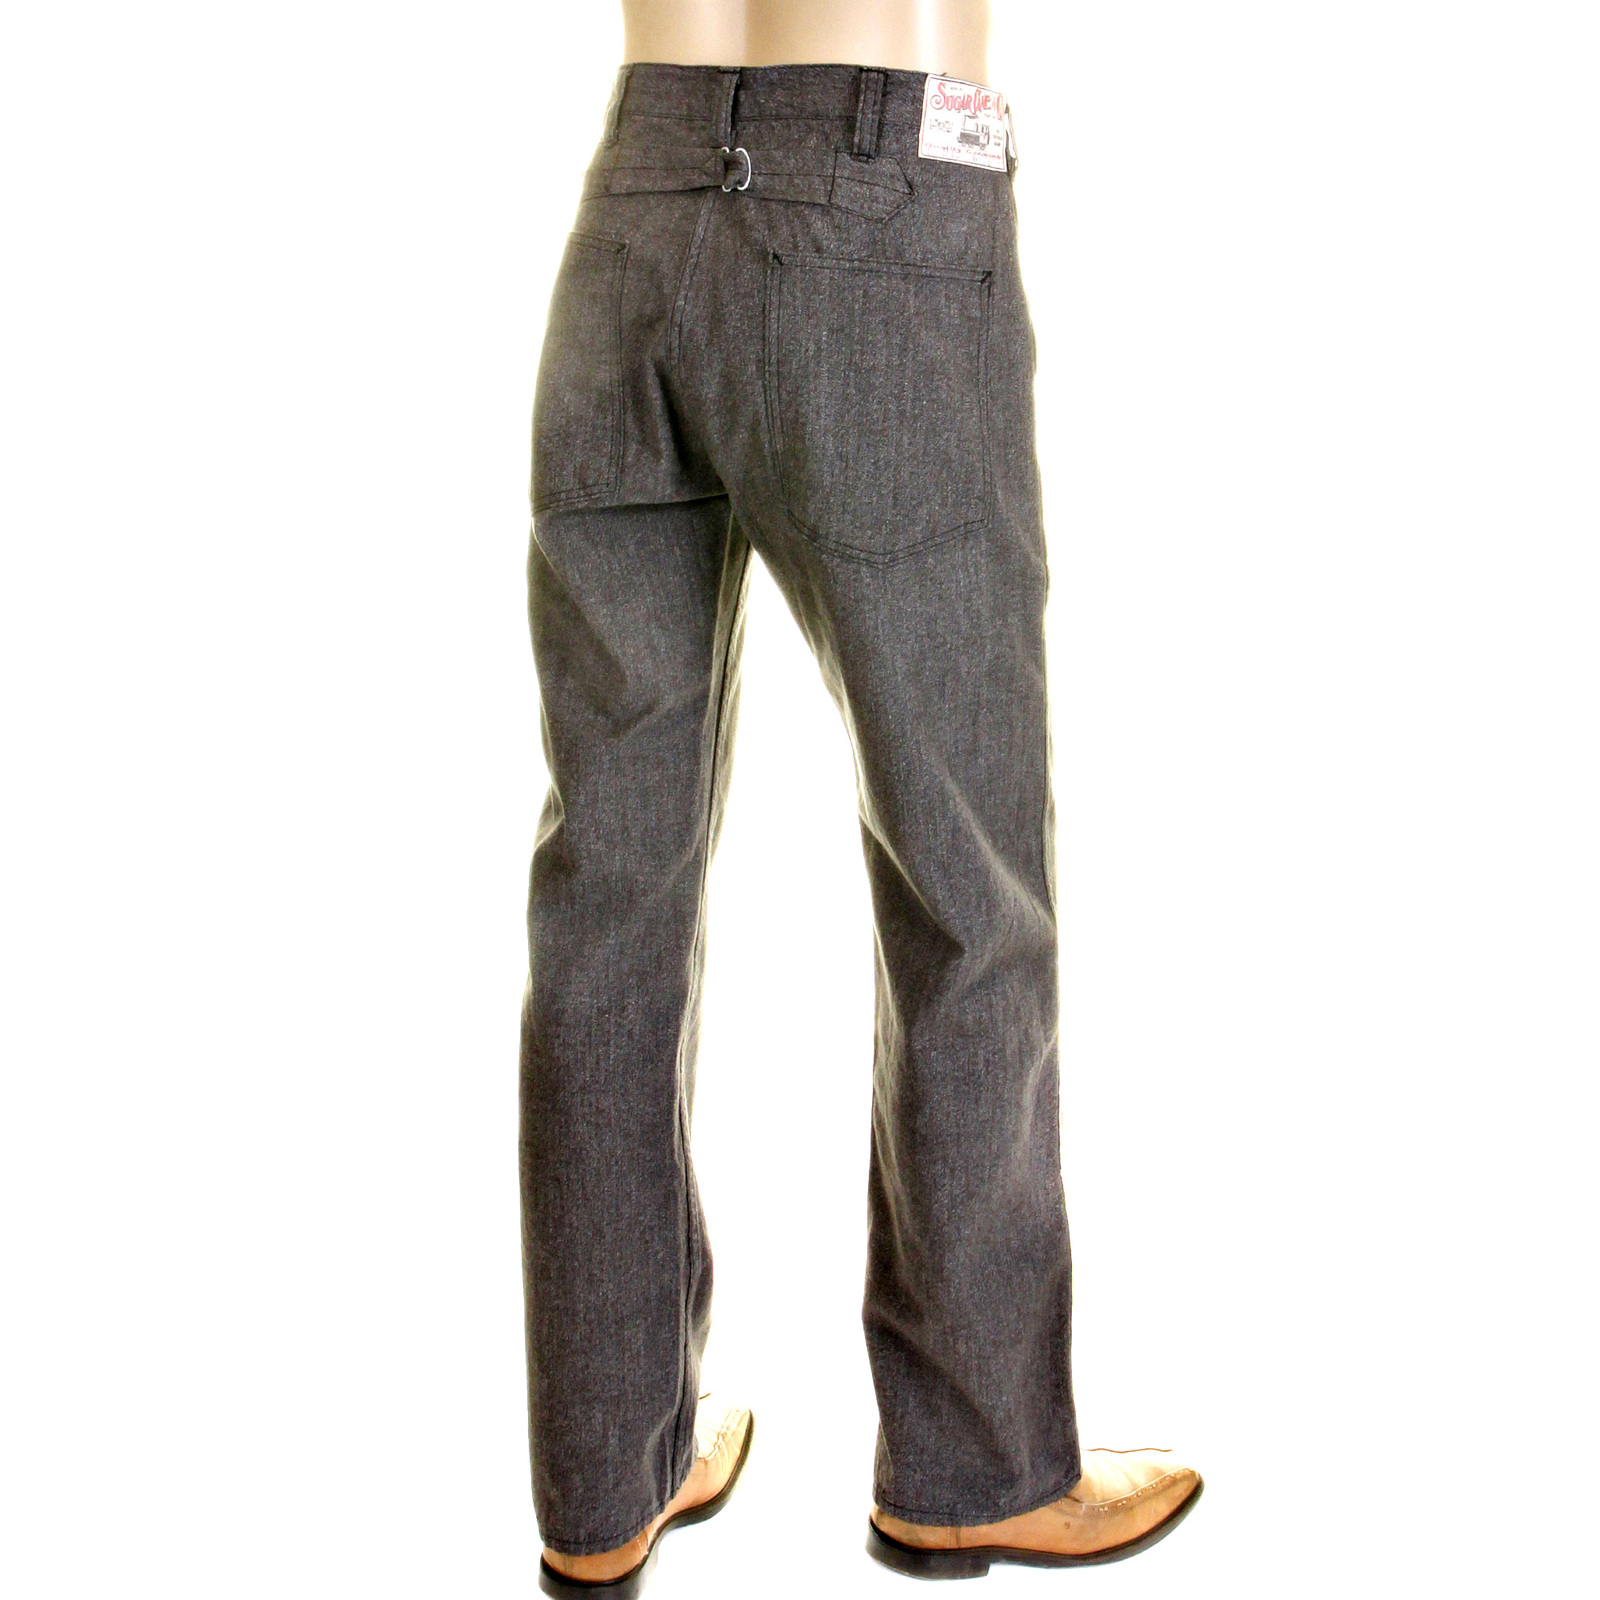 Brand new Shop for Mens Vintage Cut Grey Pants from Sugar Cane UT61